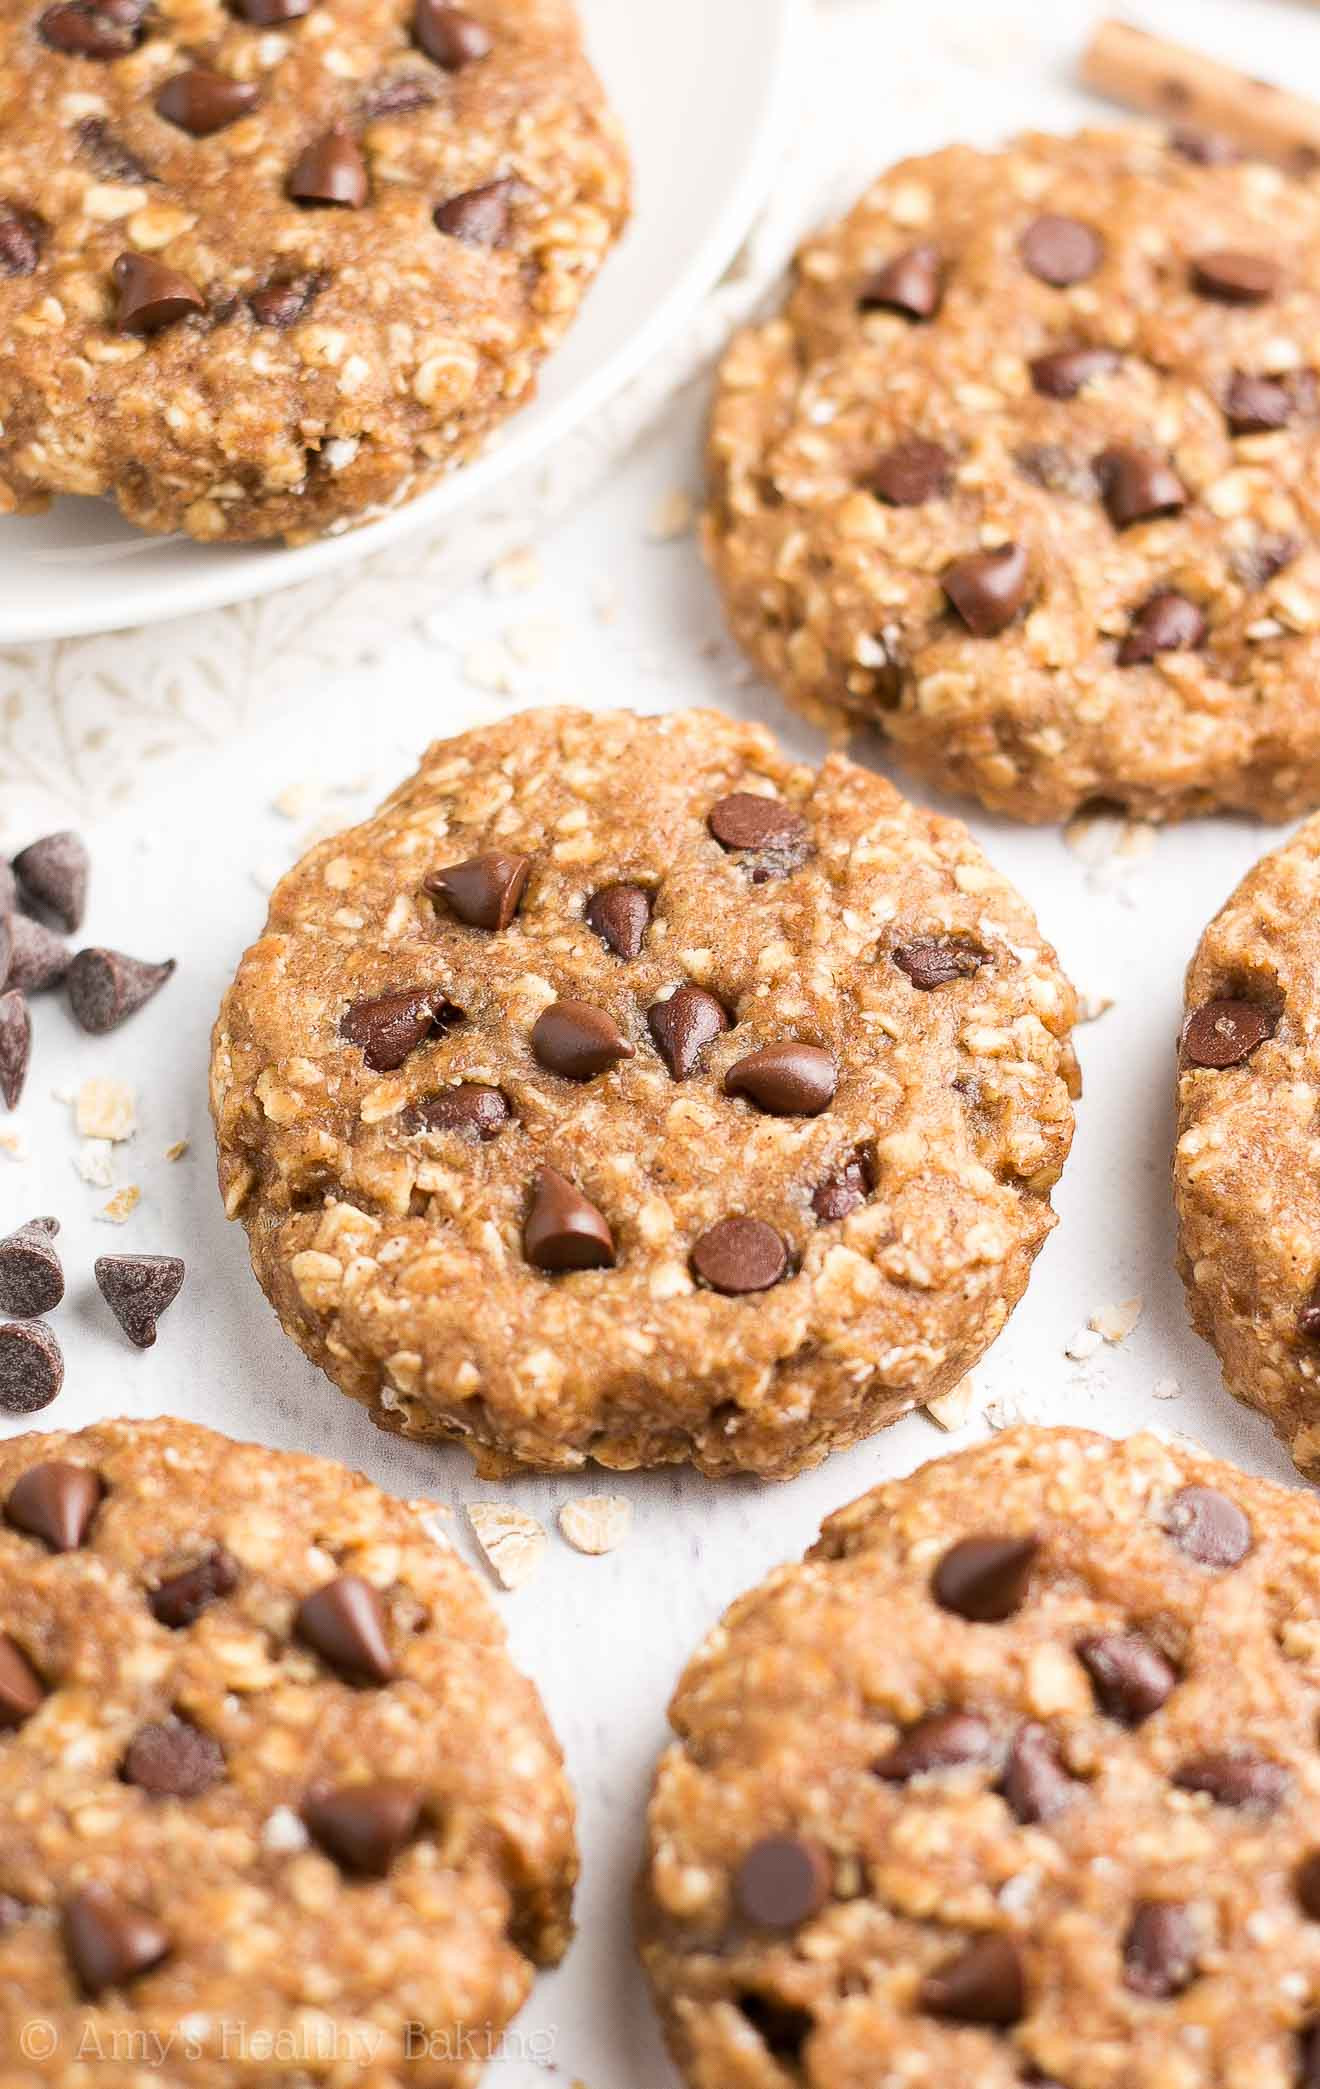 Healthy Peanut Butter Chocolate Chip Cookies  Healthy Chocolate Chip Peanut Butter Oatmeal Breakfast